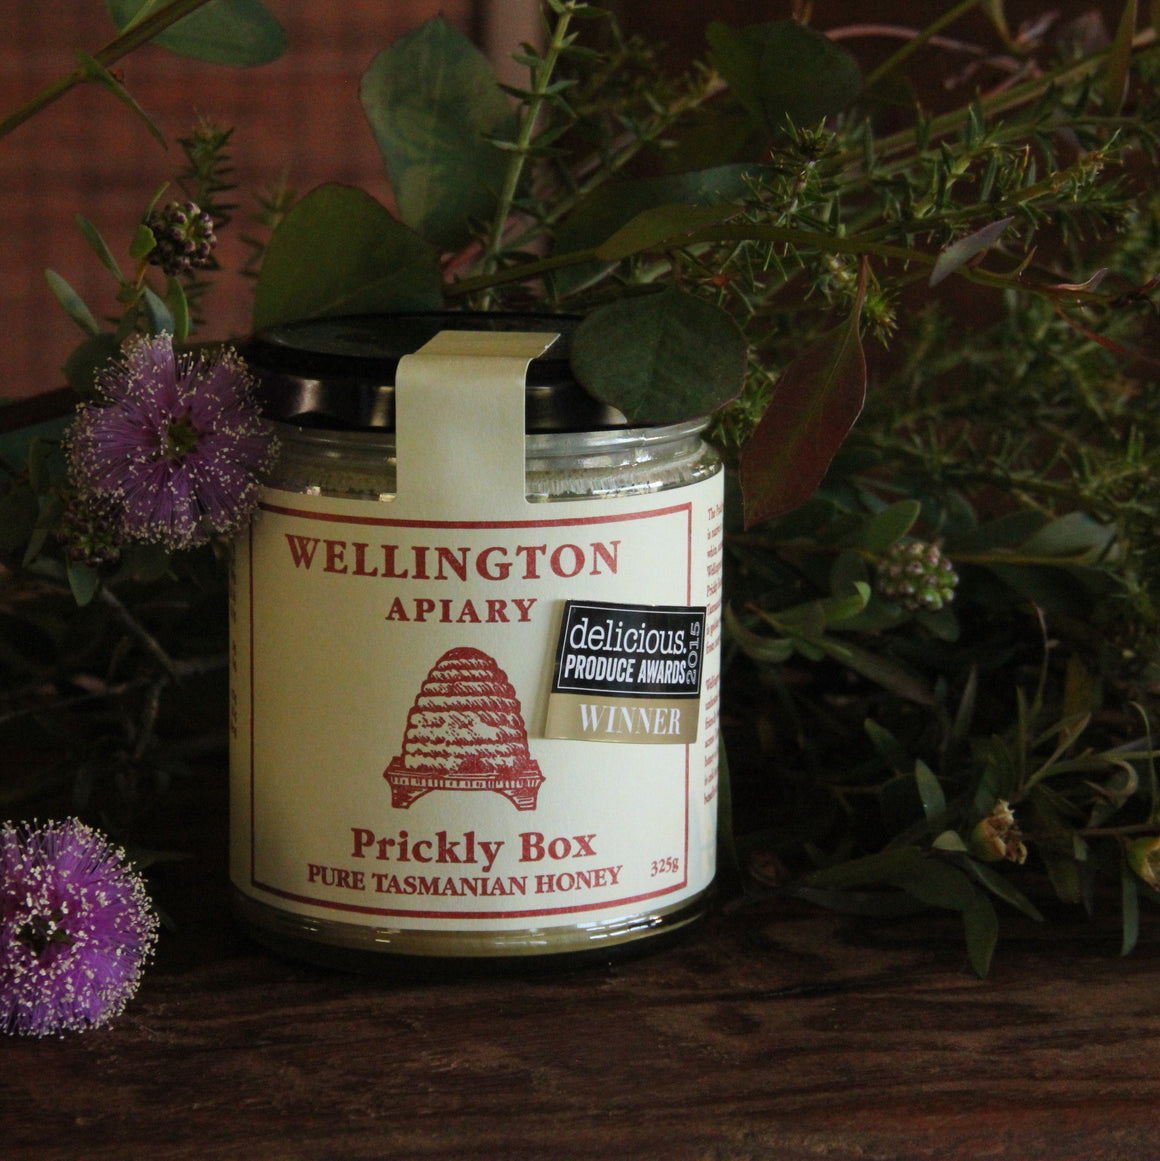 Wellington Apiary Prickly Box - Tasmanian Gourmet Online